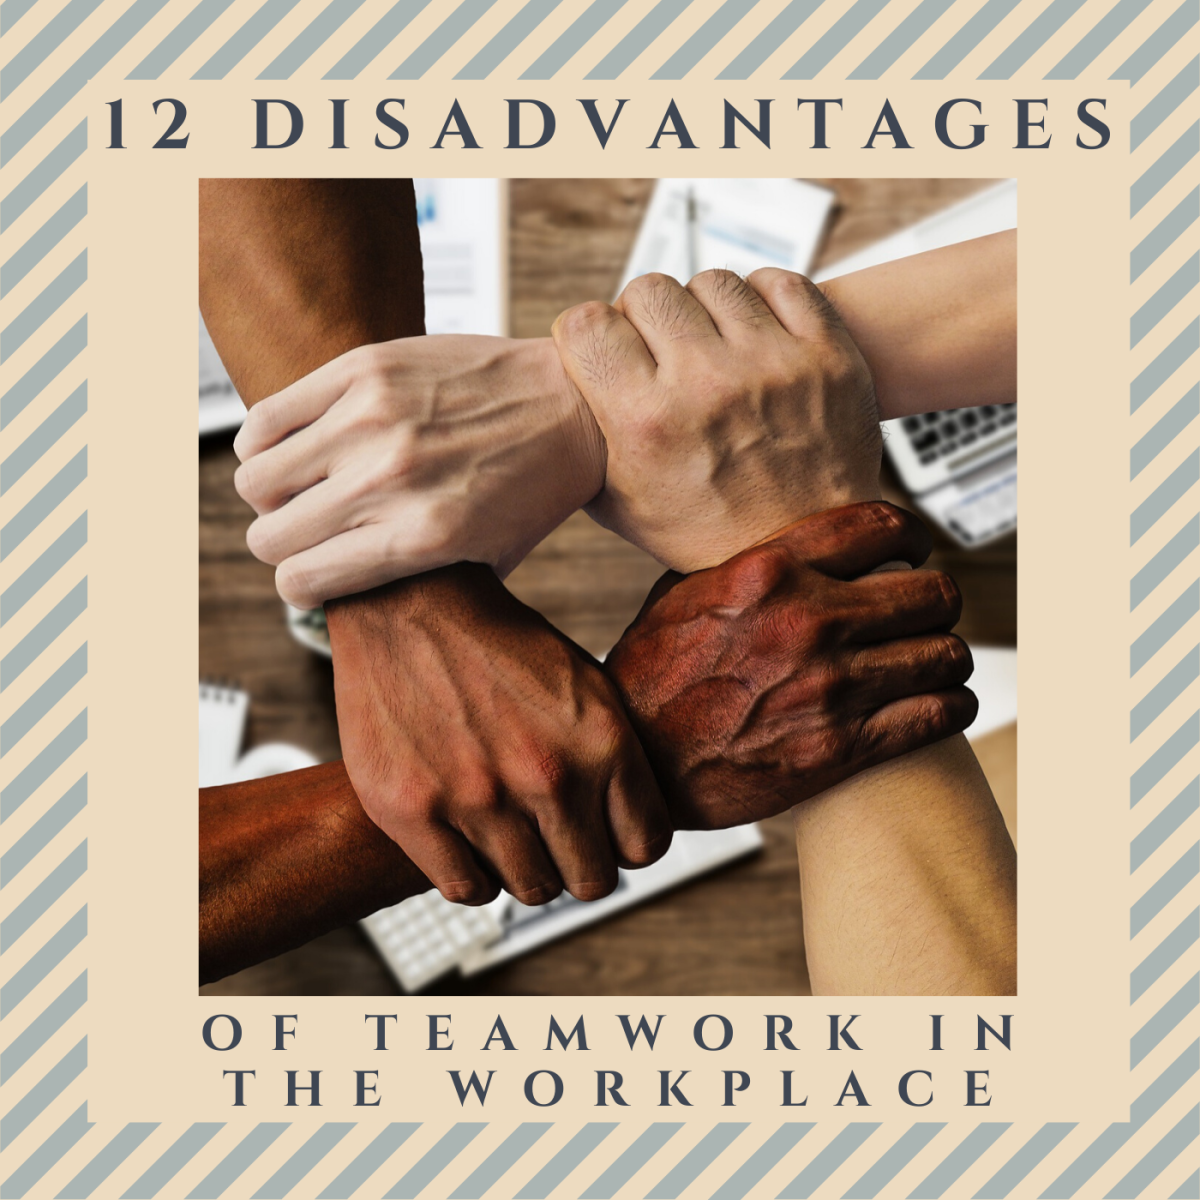 The merits of teamwork have been covered extensively, but the downsides to collaborative group work are rarely discussed.